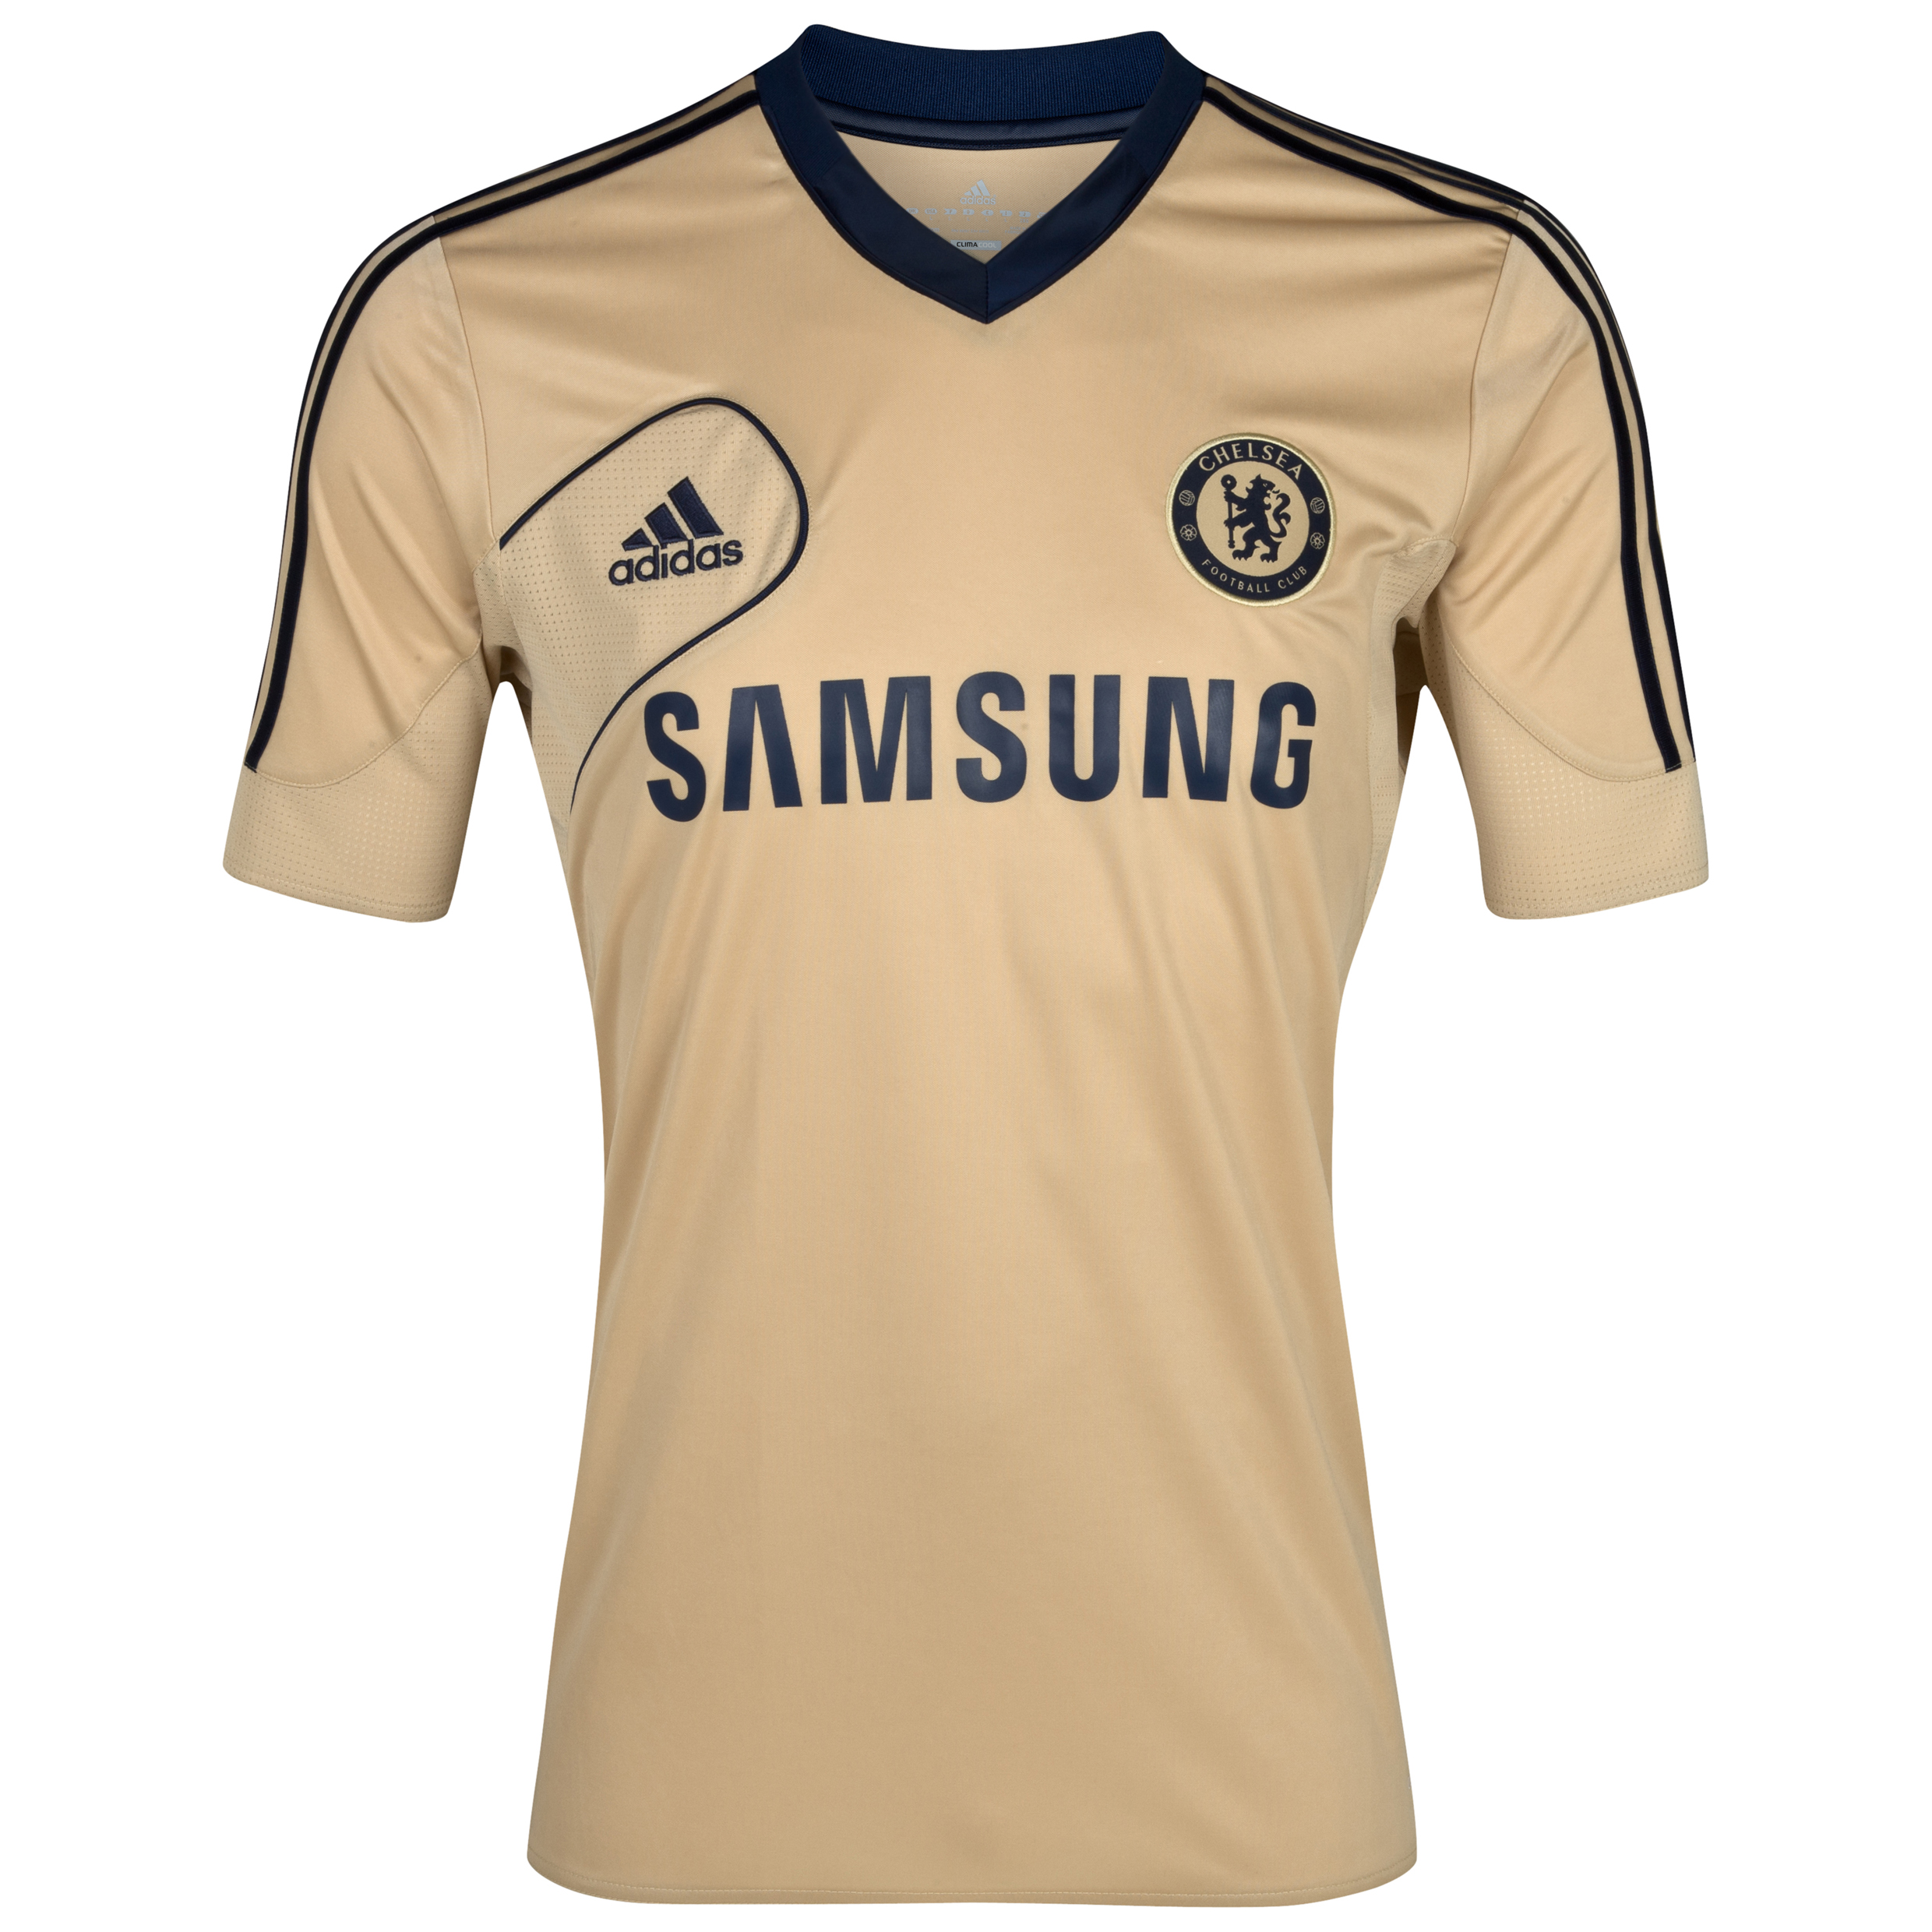 adidas Chelsea Training Jersey - Light Football Gold/Collegiate Navy - Kids